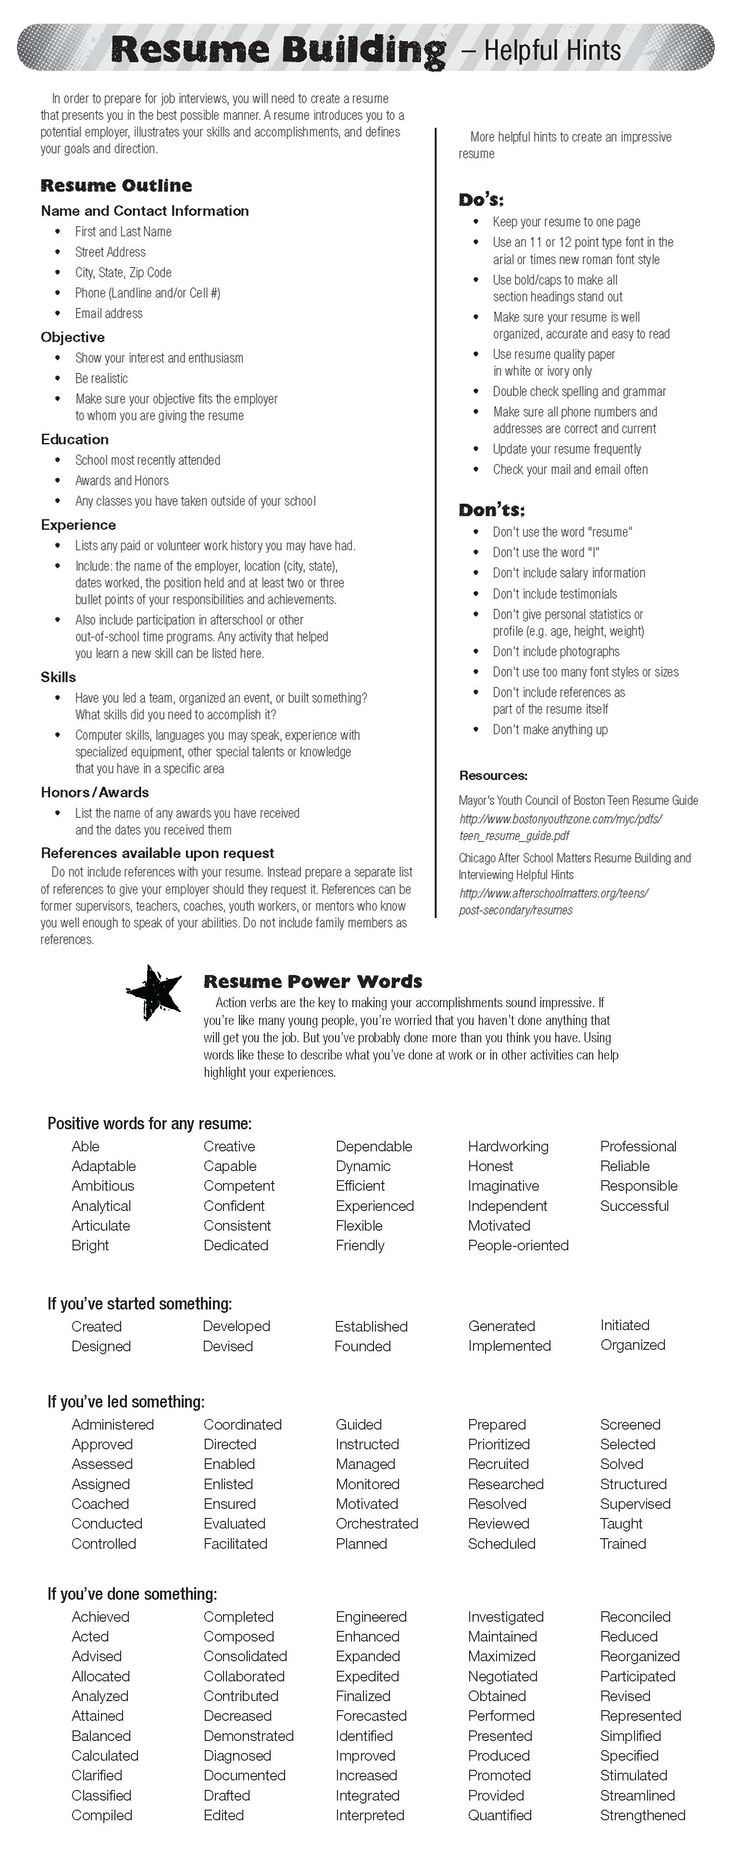 Opposenewapstandardsus  Remarkable  Ideas About Resume On Pinterest  Cv Format Resume Cv And  With Luxury  Ideas About Resume On Pinterest  Cv Format Resume Cv And Resume Templates With Breathtaking Business Analyst Resume Template Also Resume Cover Sheet Example In Addition Adjunct Instructor Resume And Procurement Manager Resume As Well As Senior Auditor Resume Additionally Graduate School Resume Objective From Pinterestcom With Opposenewapstandardsus  Luxury  Ideas About Resume On Pinterest  Cv Format Resume Cv And  With Breathtaking  Ideas About Resume On Pinterest  Cv Format Resume Cv And Resume Templates And Remarkable Business Analyst Resume Template Also Resume Cover Sheet Example In Addition Adjunct Instructor Resume From Pinterestcom